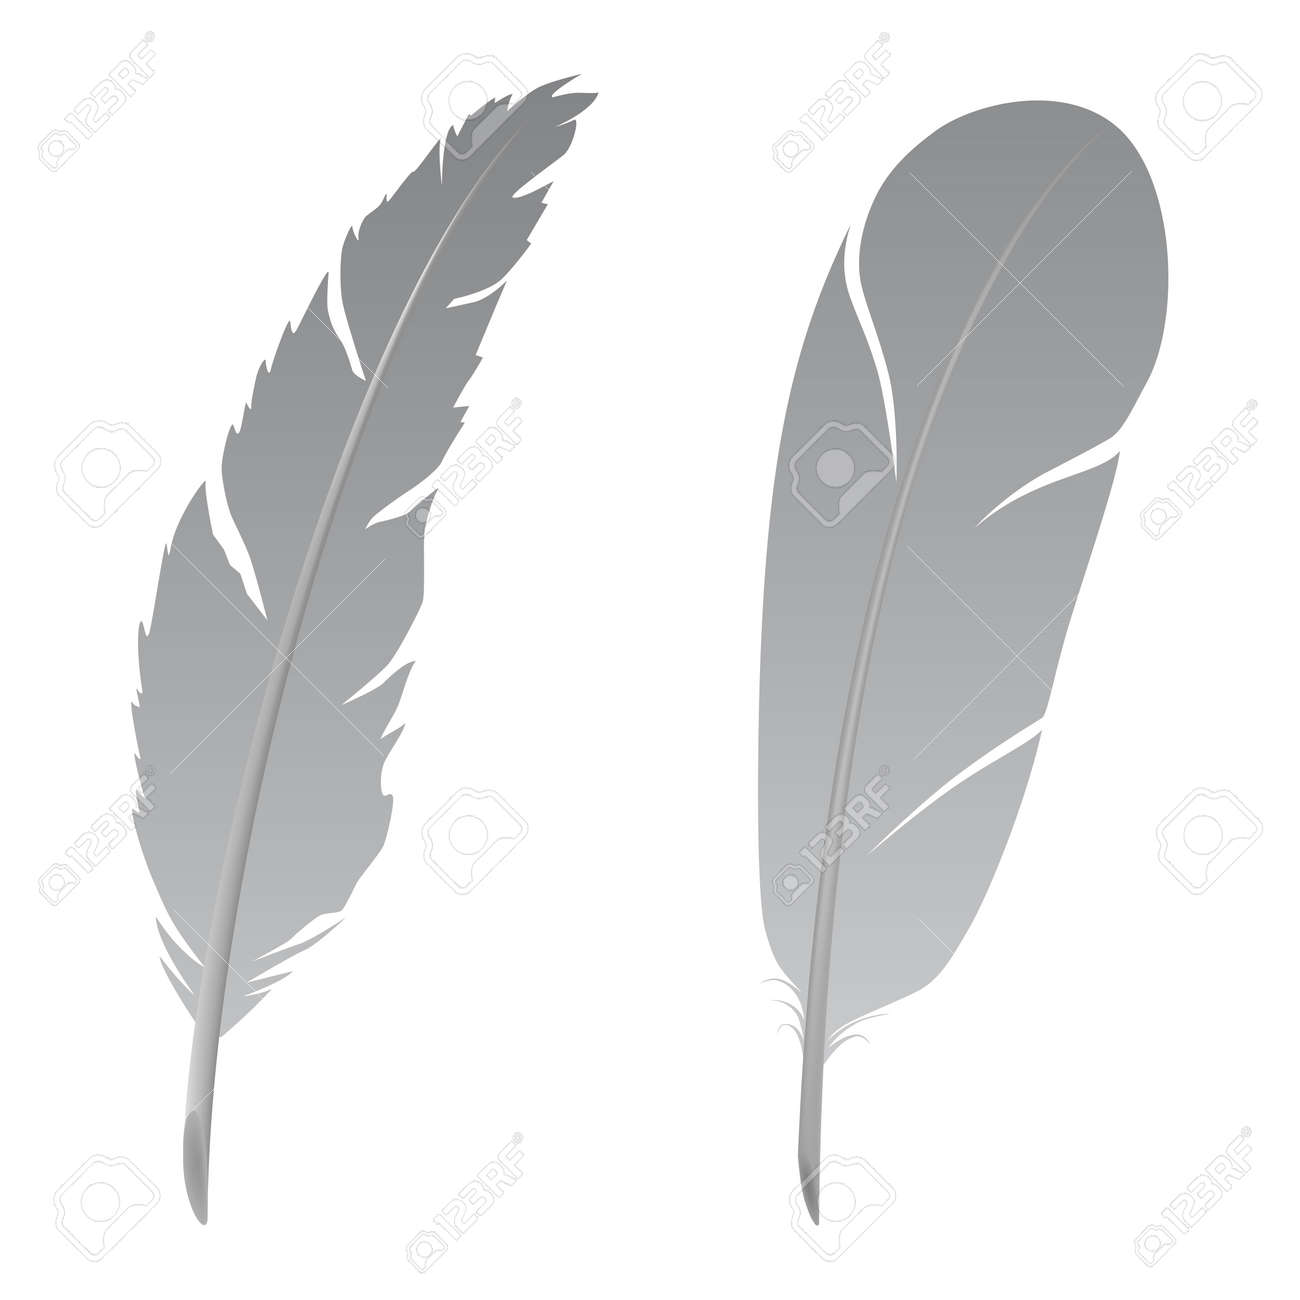 Feather Stock Vector - 2646040